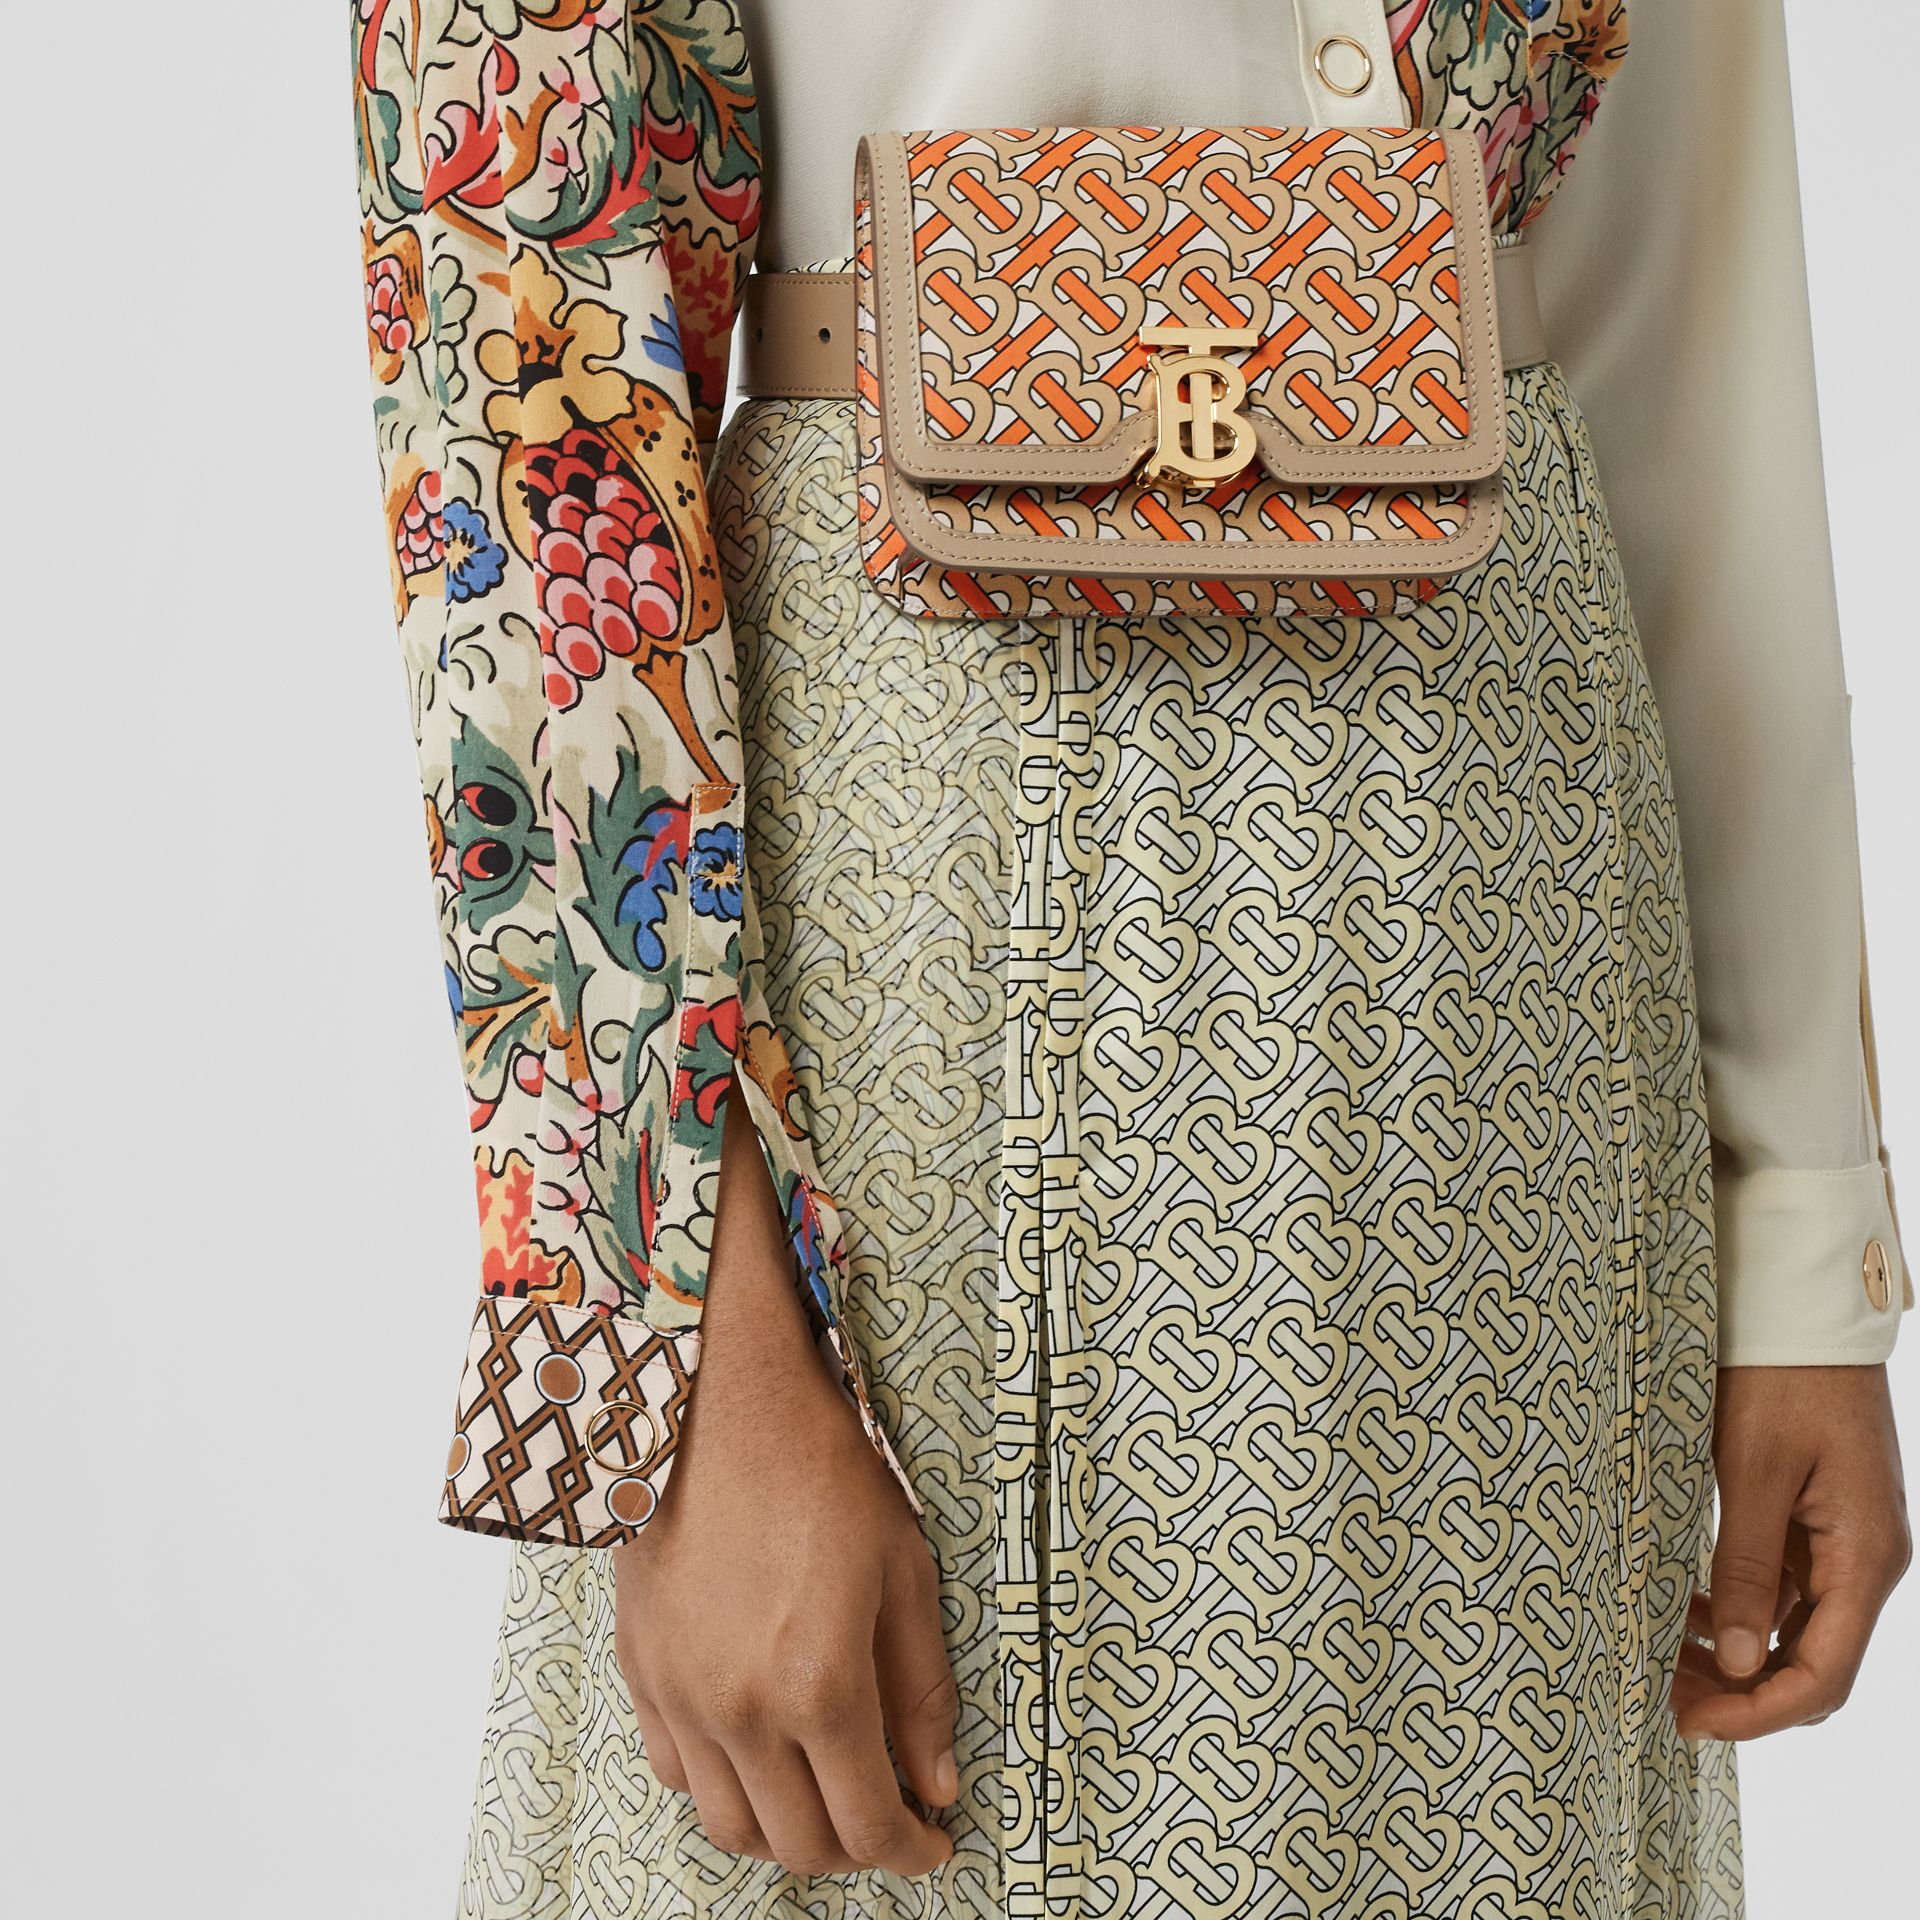 Belted Monogram Print Leather TB Bag in Bright Orange - Women | Burberry Australia - gallery image 2